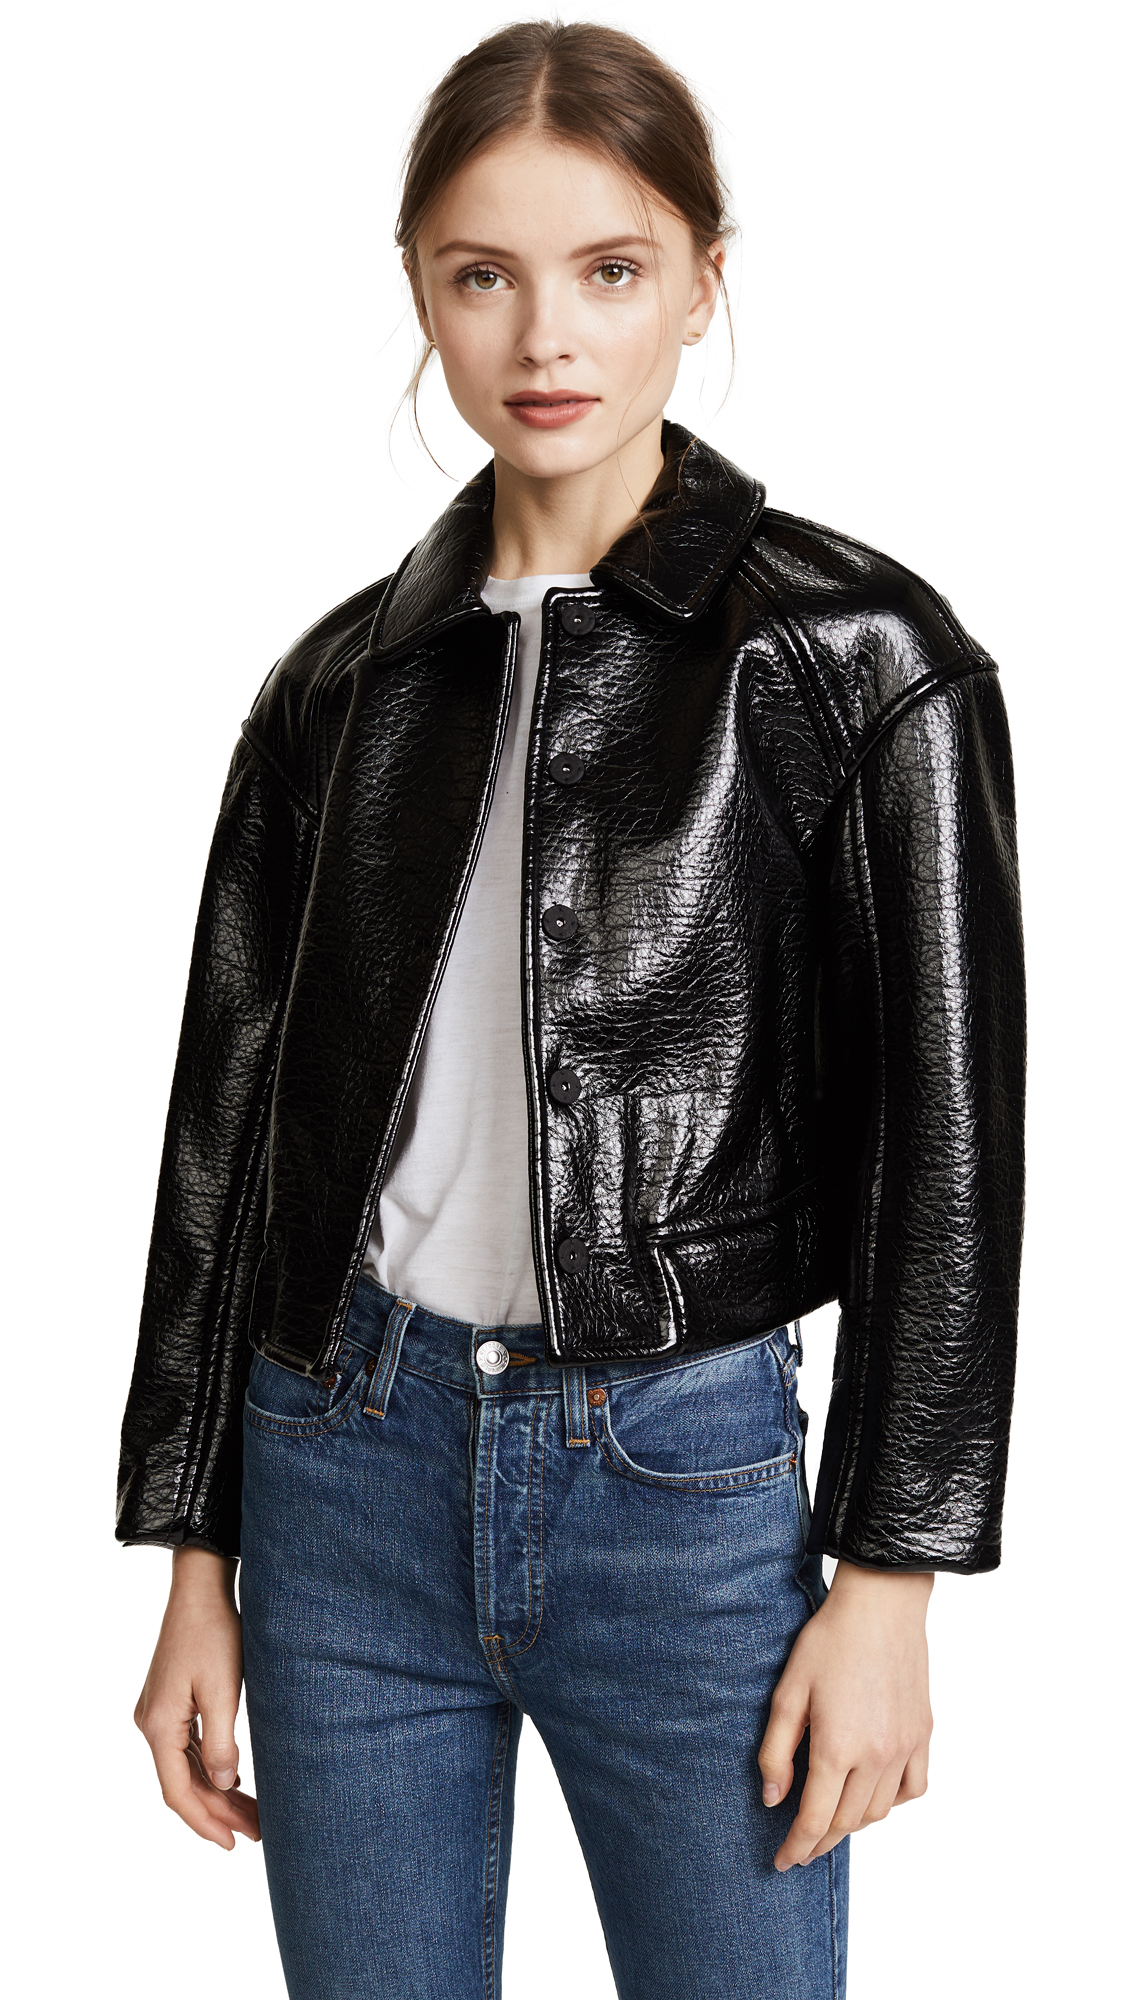 Rebecca Taylor Textured Vegan Leather Jacket - Black